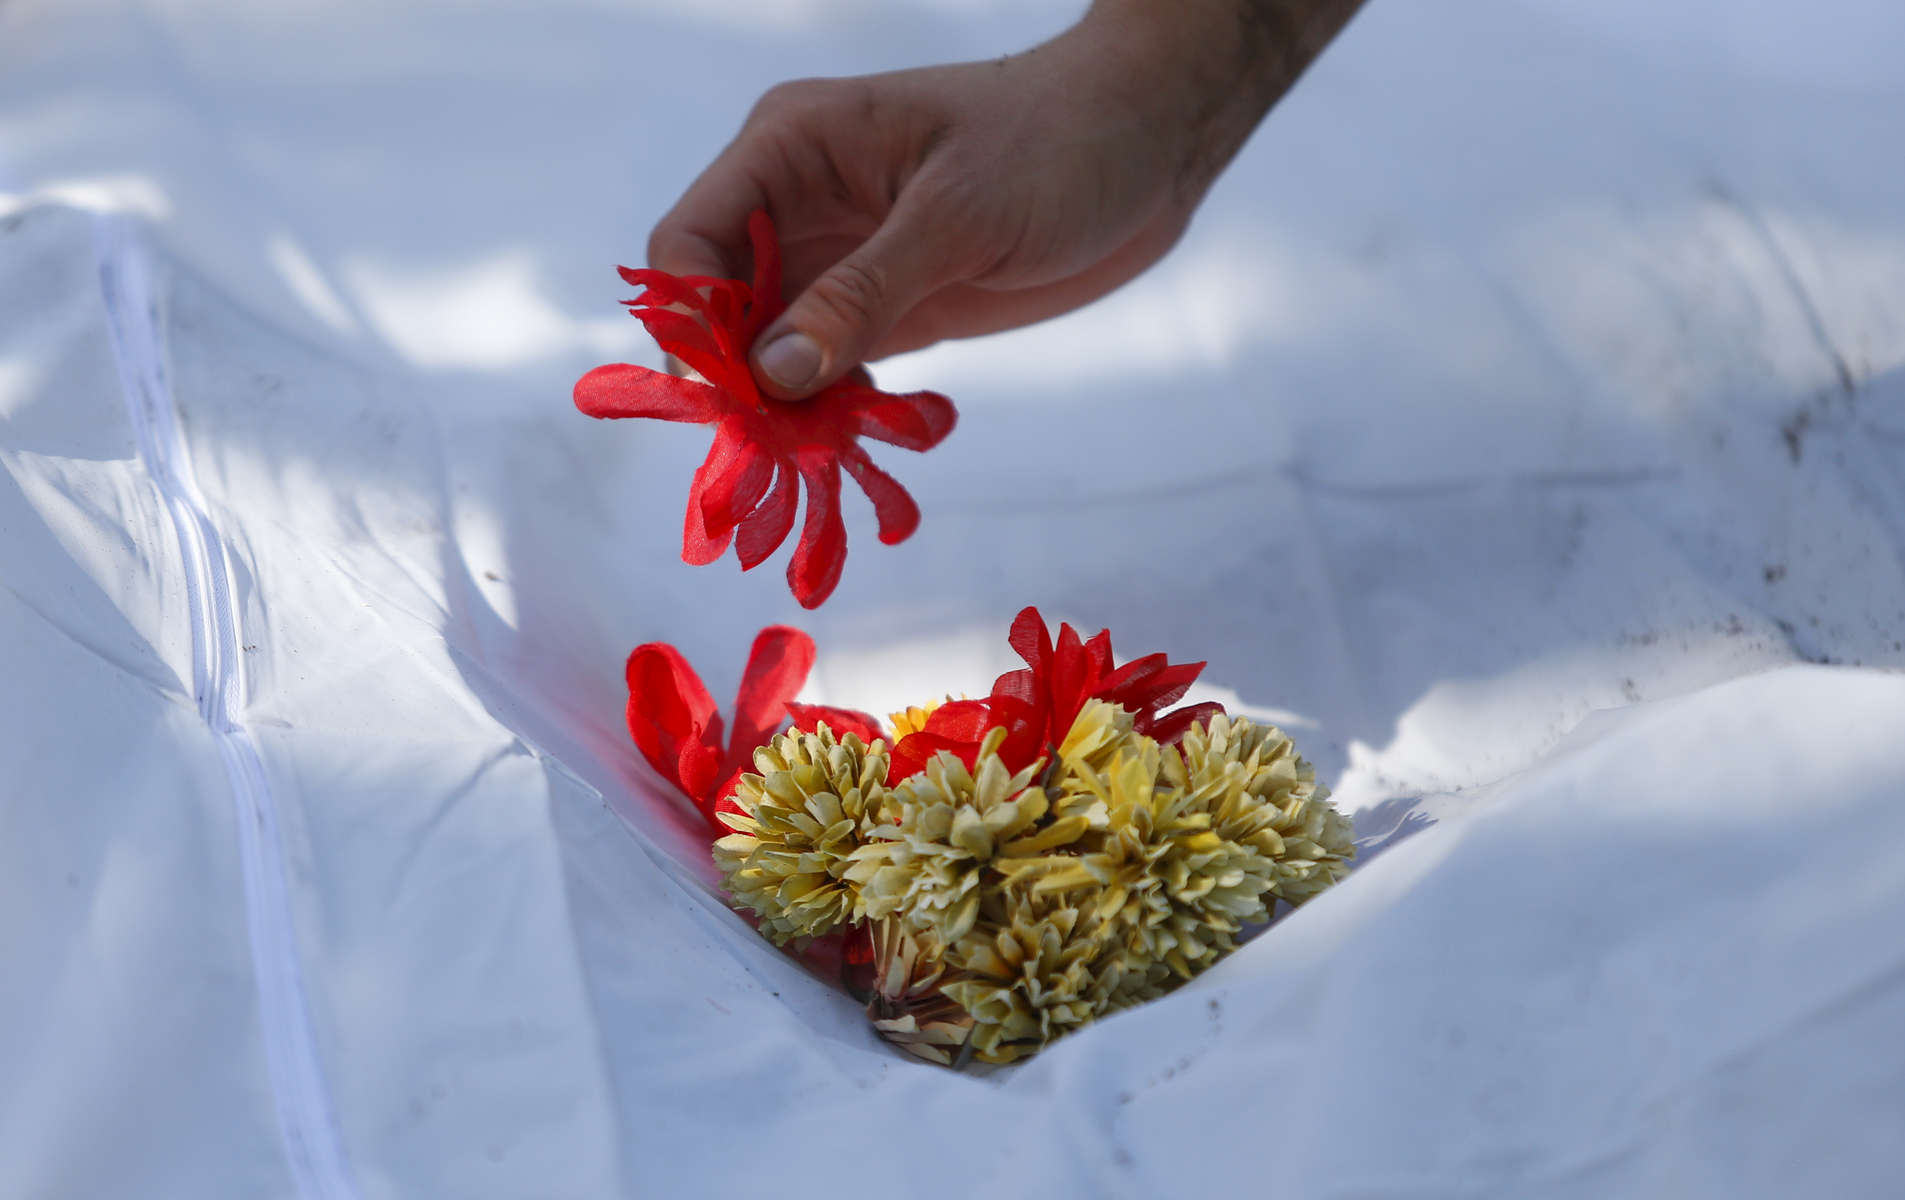 A flower placed by a member of the Baylor forensics team rests on the body bag of an exhumed body of an unidentified migrant. More than 6,000 immigrants have died crossing the southern border since 1998, according to federal records, and hundreds of them have never been identified.